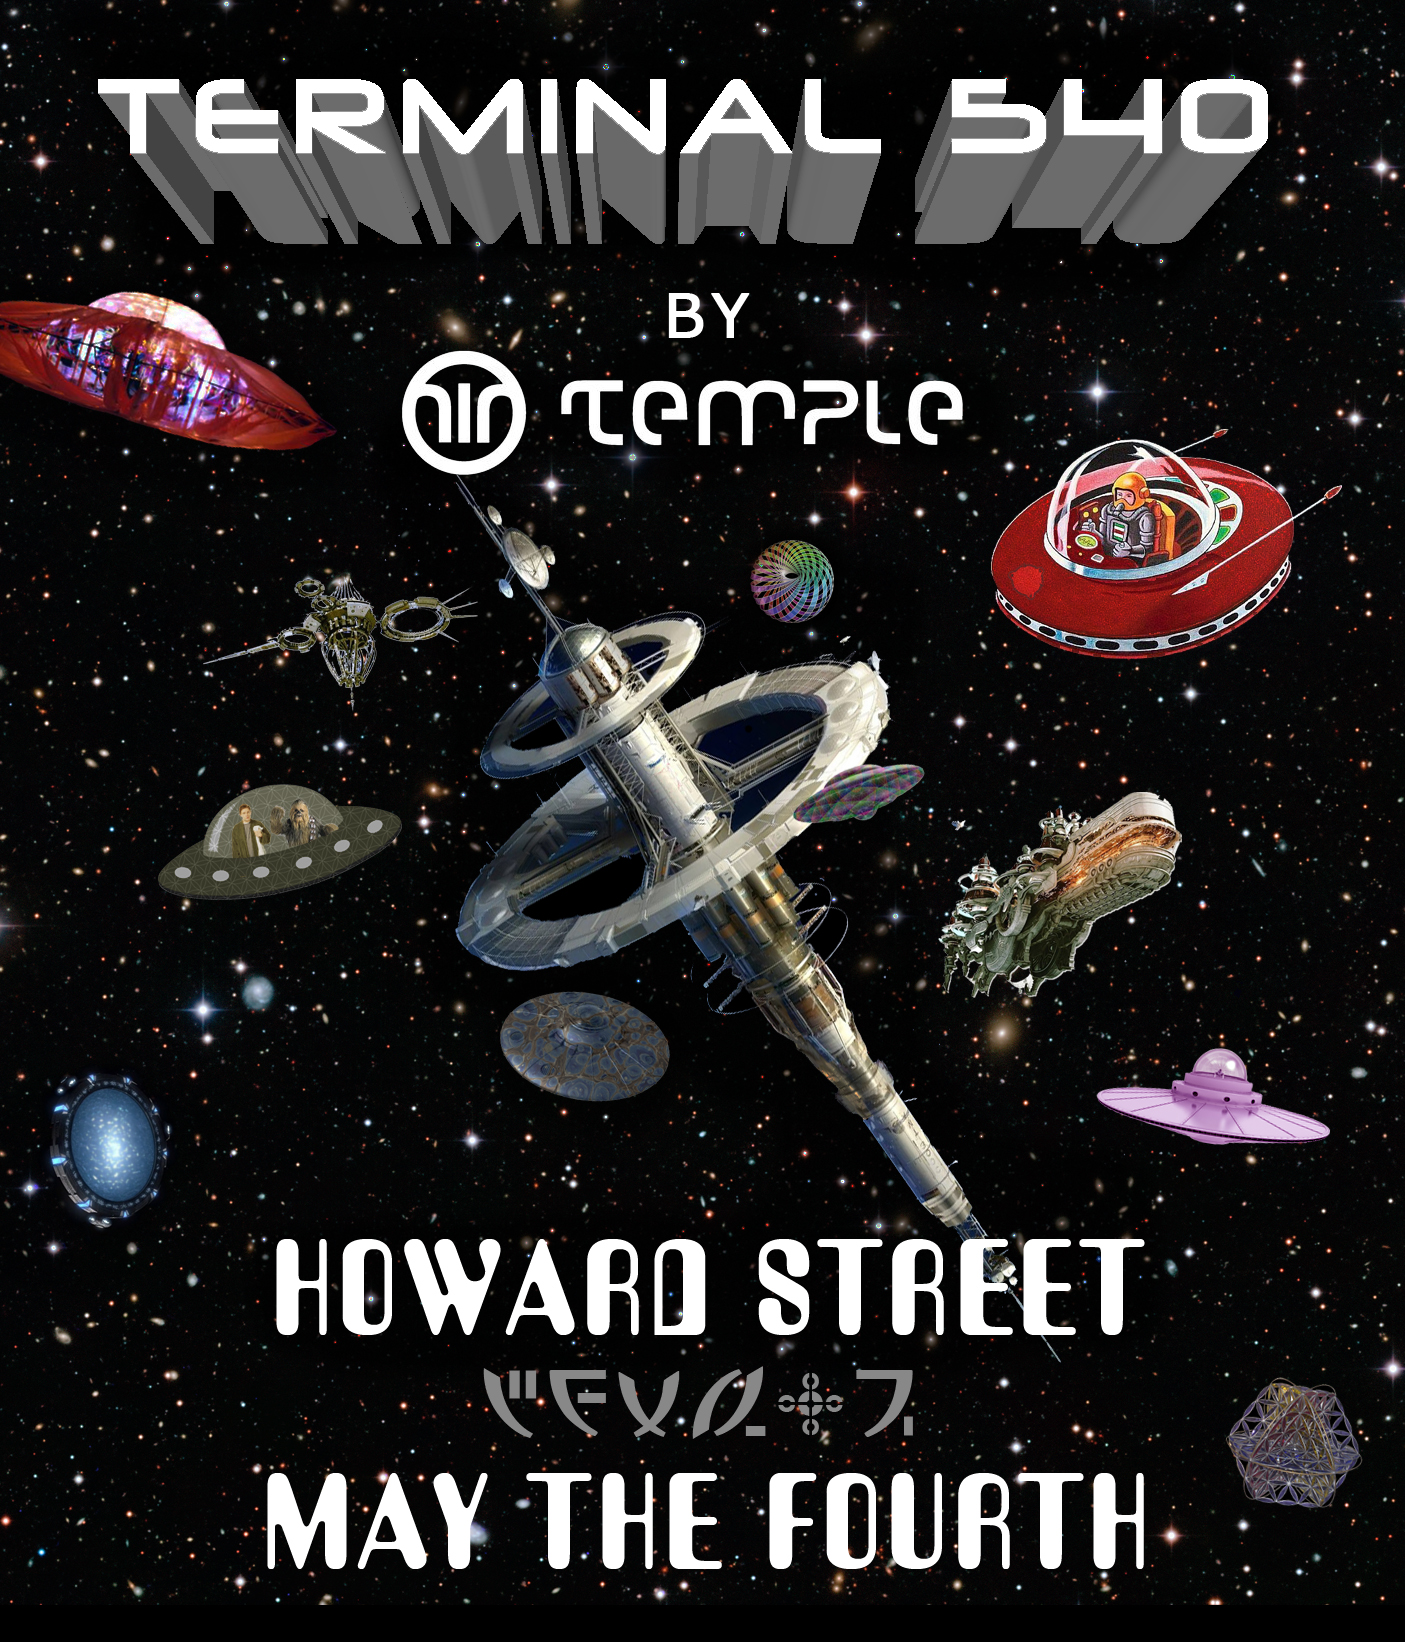 Terminal 540 stage - How Weird 2014